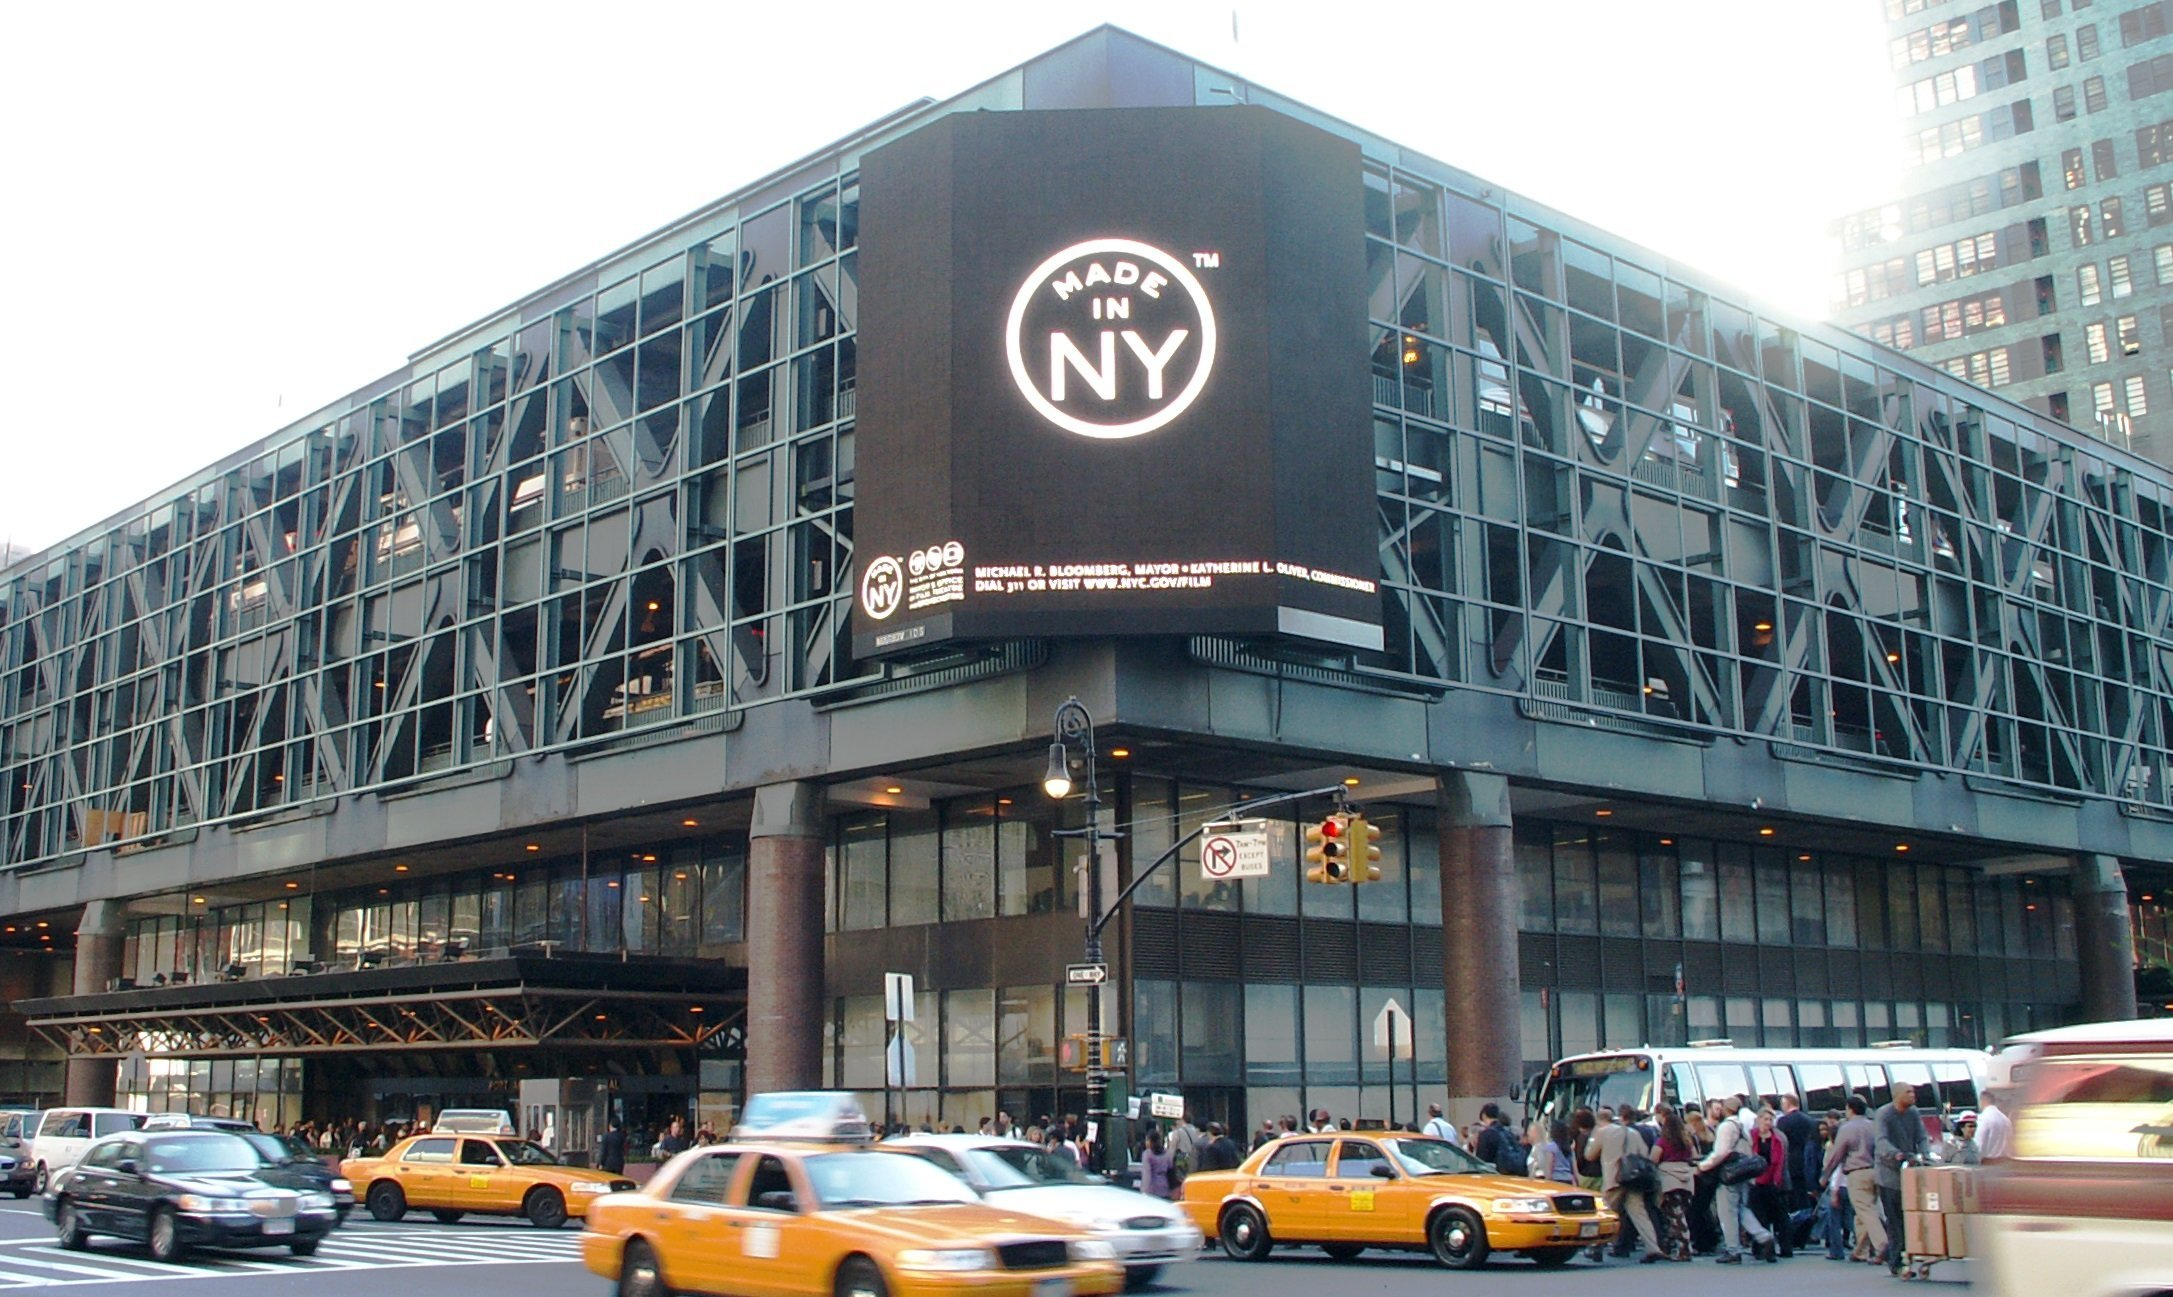 A photo of New York's Port Authority Bus Terminal. The Port Authority Bus Terminal (PABT) is the main gateway for interstate buses into Manhattan in New York City. It is owned and operated by the Port Authority of New York and New Jersey (PANYNJ). Colloquially called the Port Authority, the bus terminal is located in Midtown at 625 Eighth Avenue between 40th Street and 42nd Street, one block east of the Lincoln Tunnel and one block west of Times Square. The PABT, opened in 1950 between 8th and 9th Avenues and 40th and 41st Streets, was built to consolidate the many different private terminals spread across Midtown Manhattan. A second wing extending to 42nd Street was added in 1979. It is one of three bus terminals operated by the PANYNJ, the others being the George Washington Bridge Bus Station in Upper Manhattan and the Journal Square Transportation Center in Jersey City.